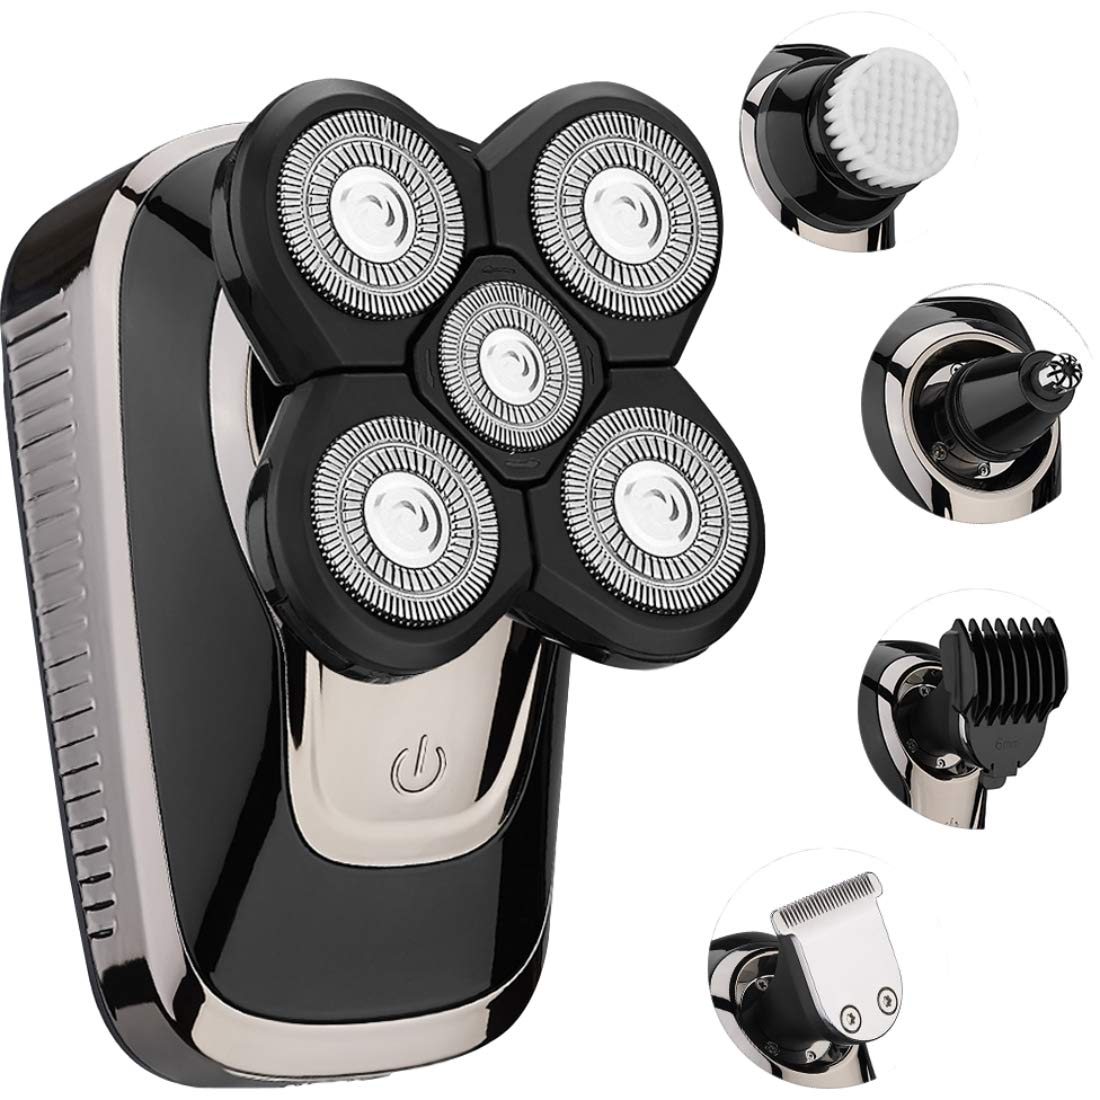 Hieha Electric Razor for Men